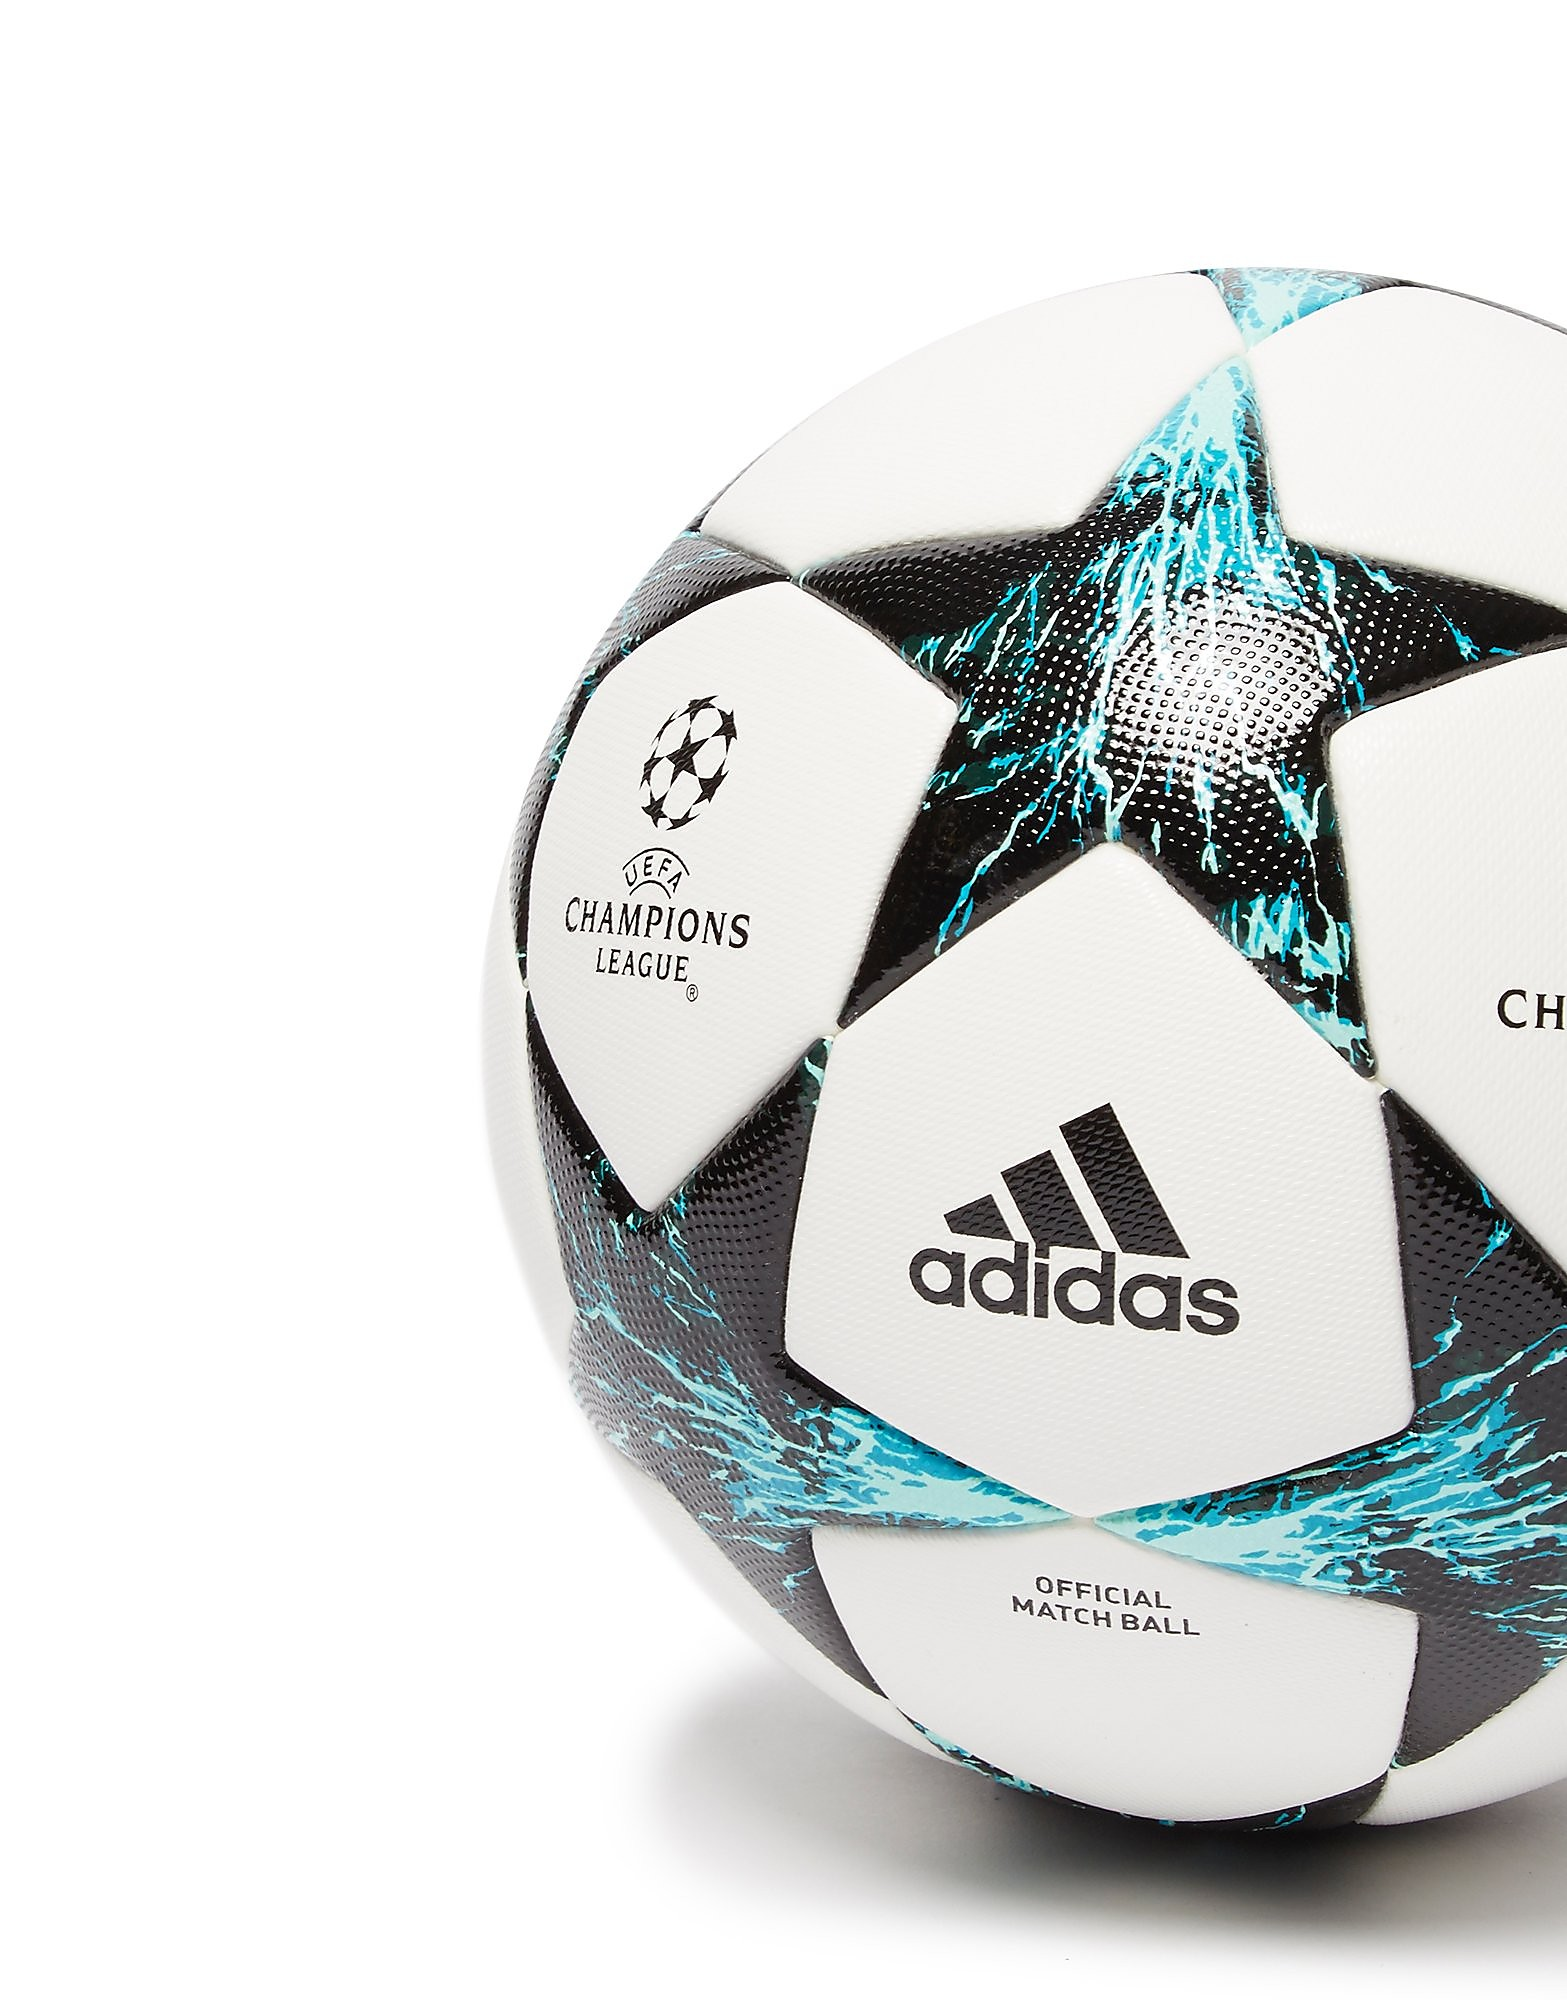 adidas Finale 17 Champions League Oficial Ball